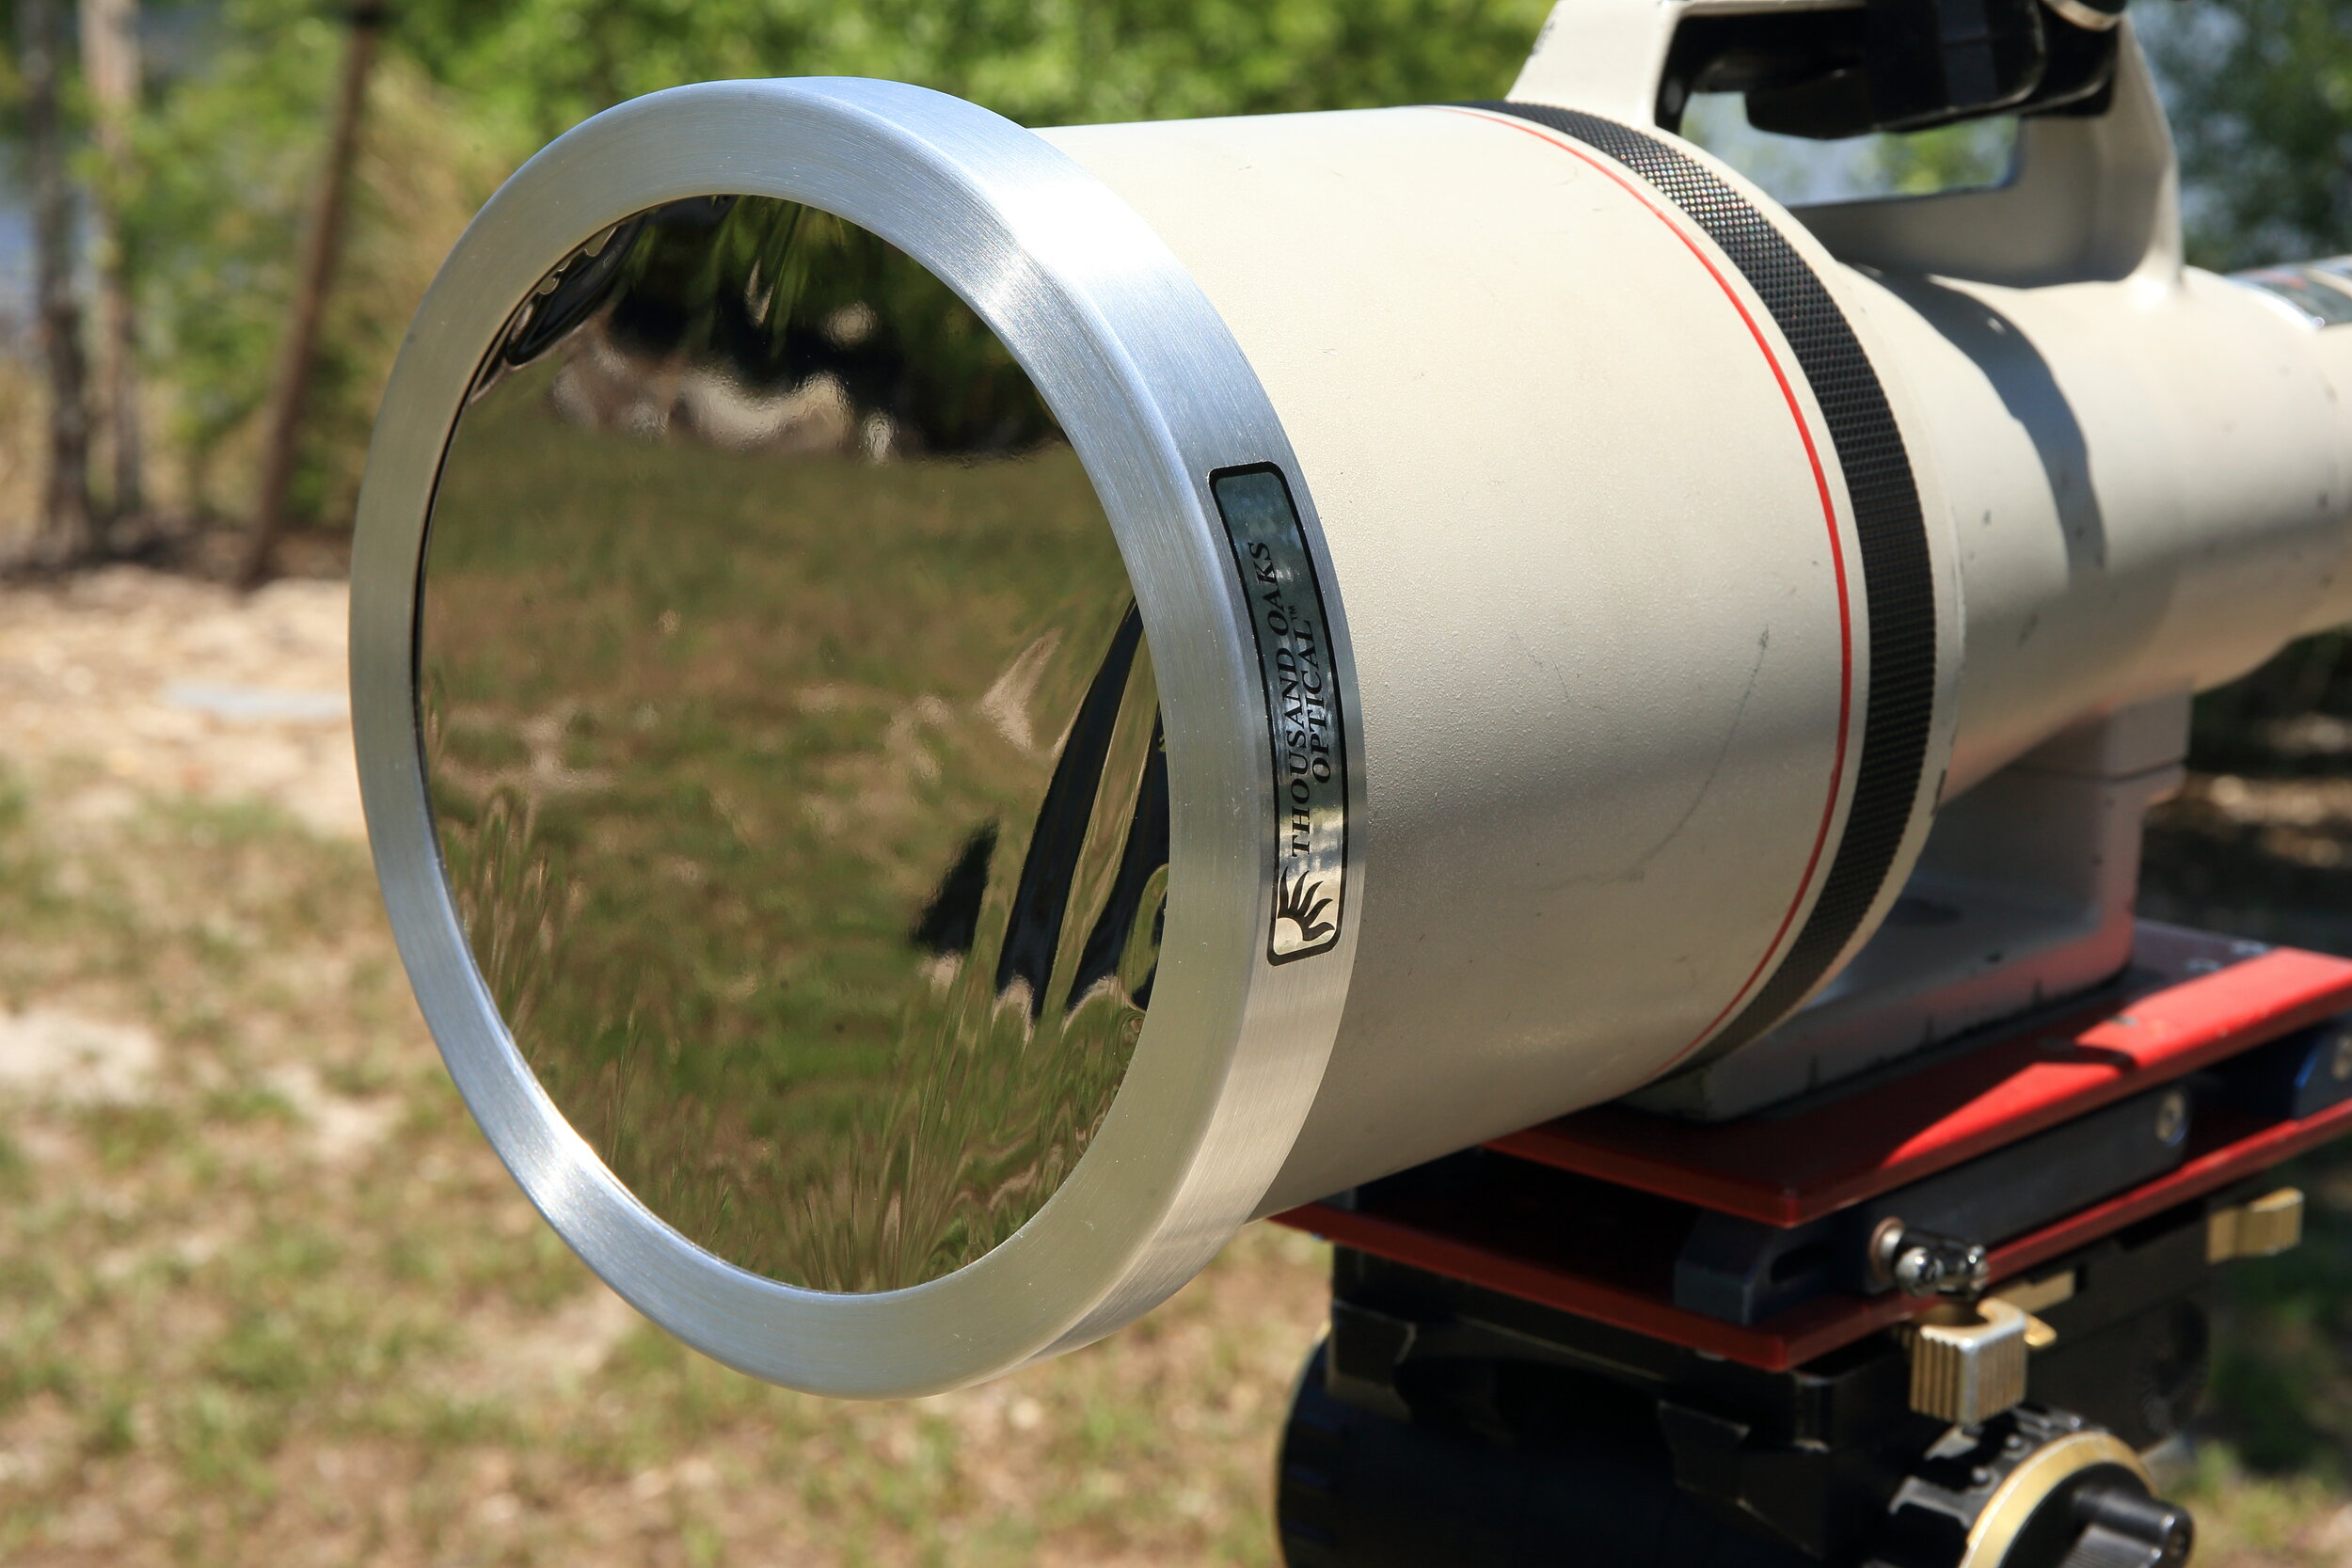 Mylar solar filter used to photograph the image of the ISS in front of the sun as seen above.